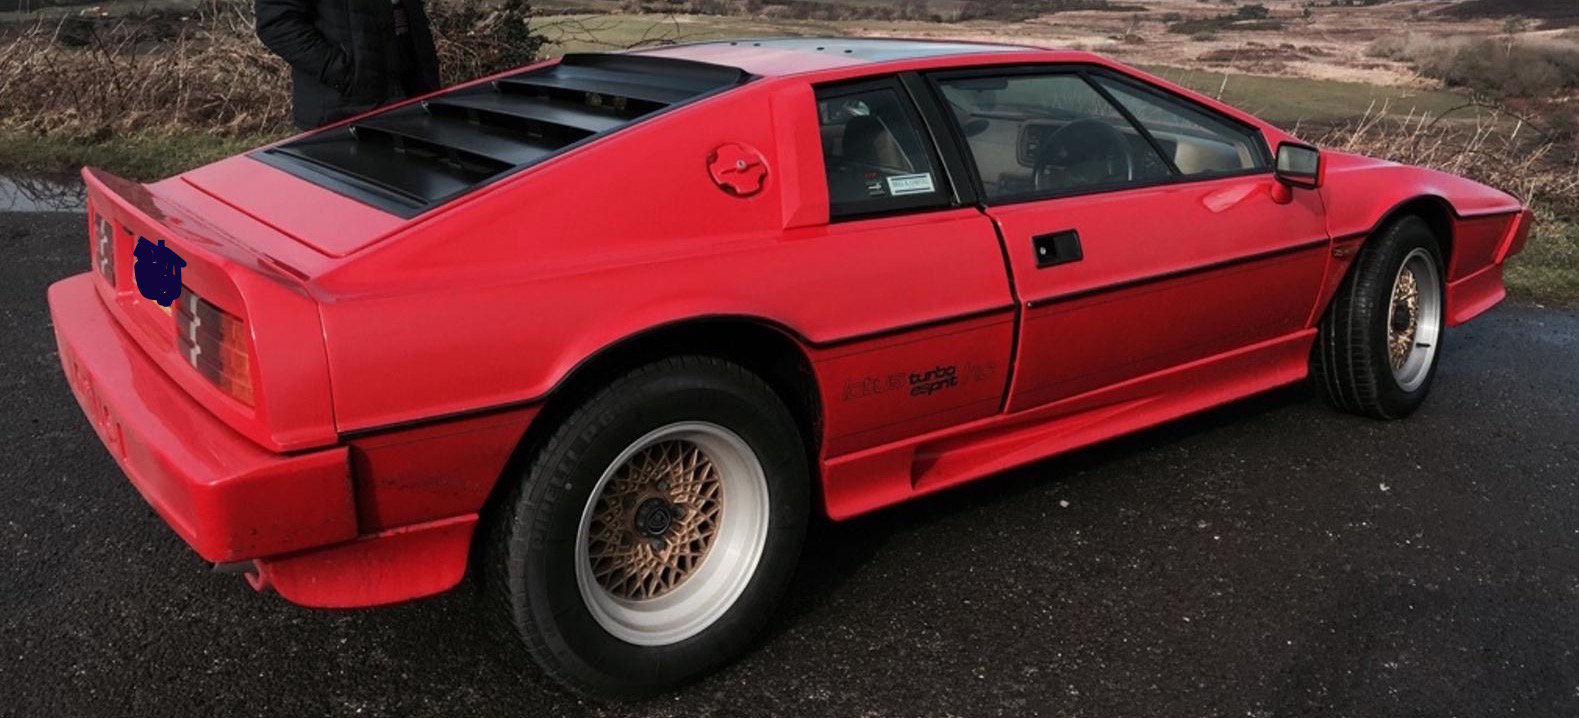 1987 Lotus Esprit Turbo HC For Sale (picture 2 of 6)